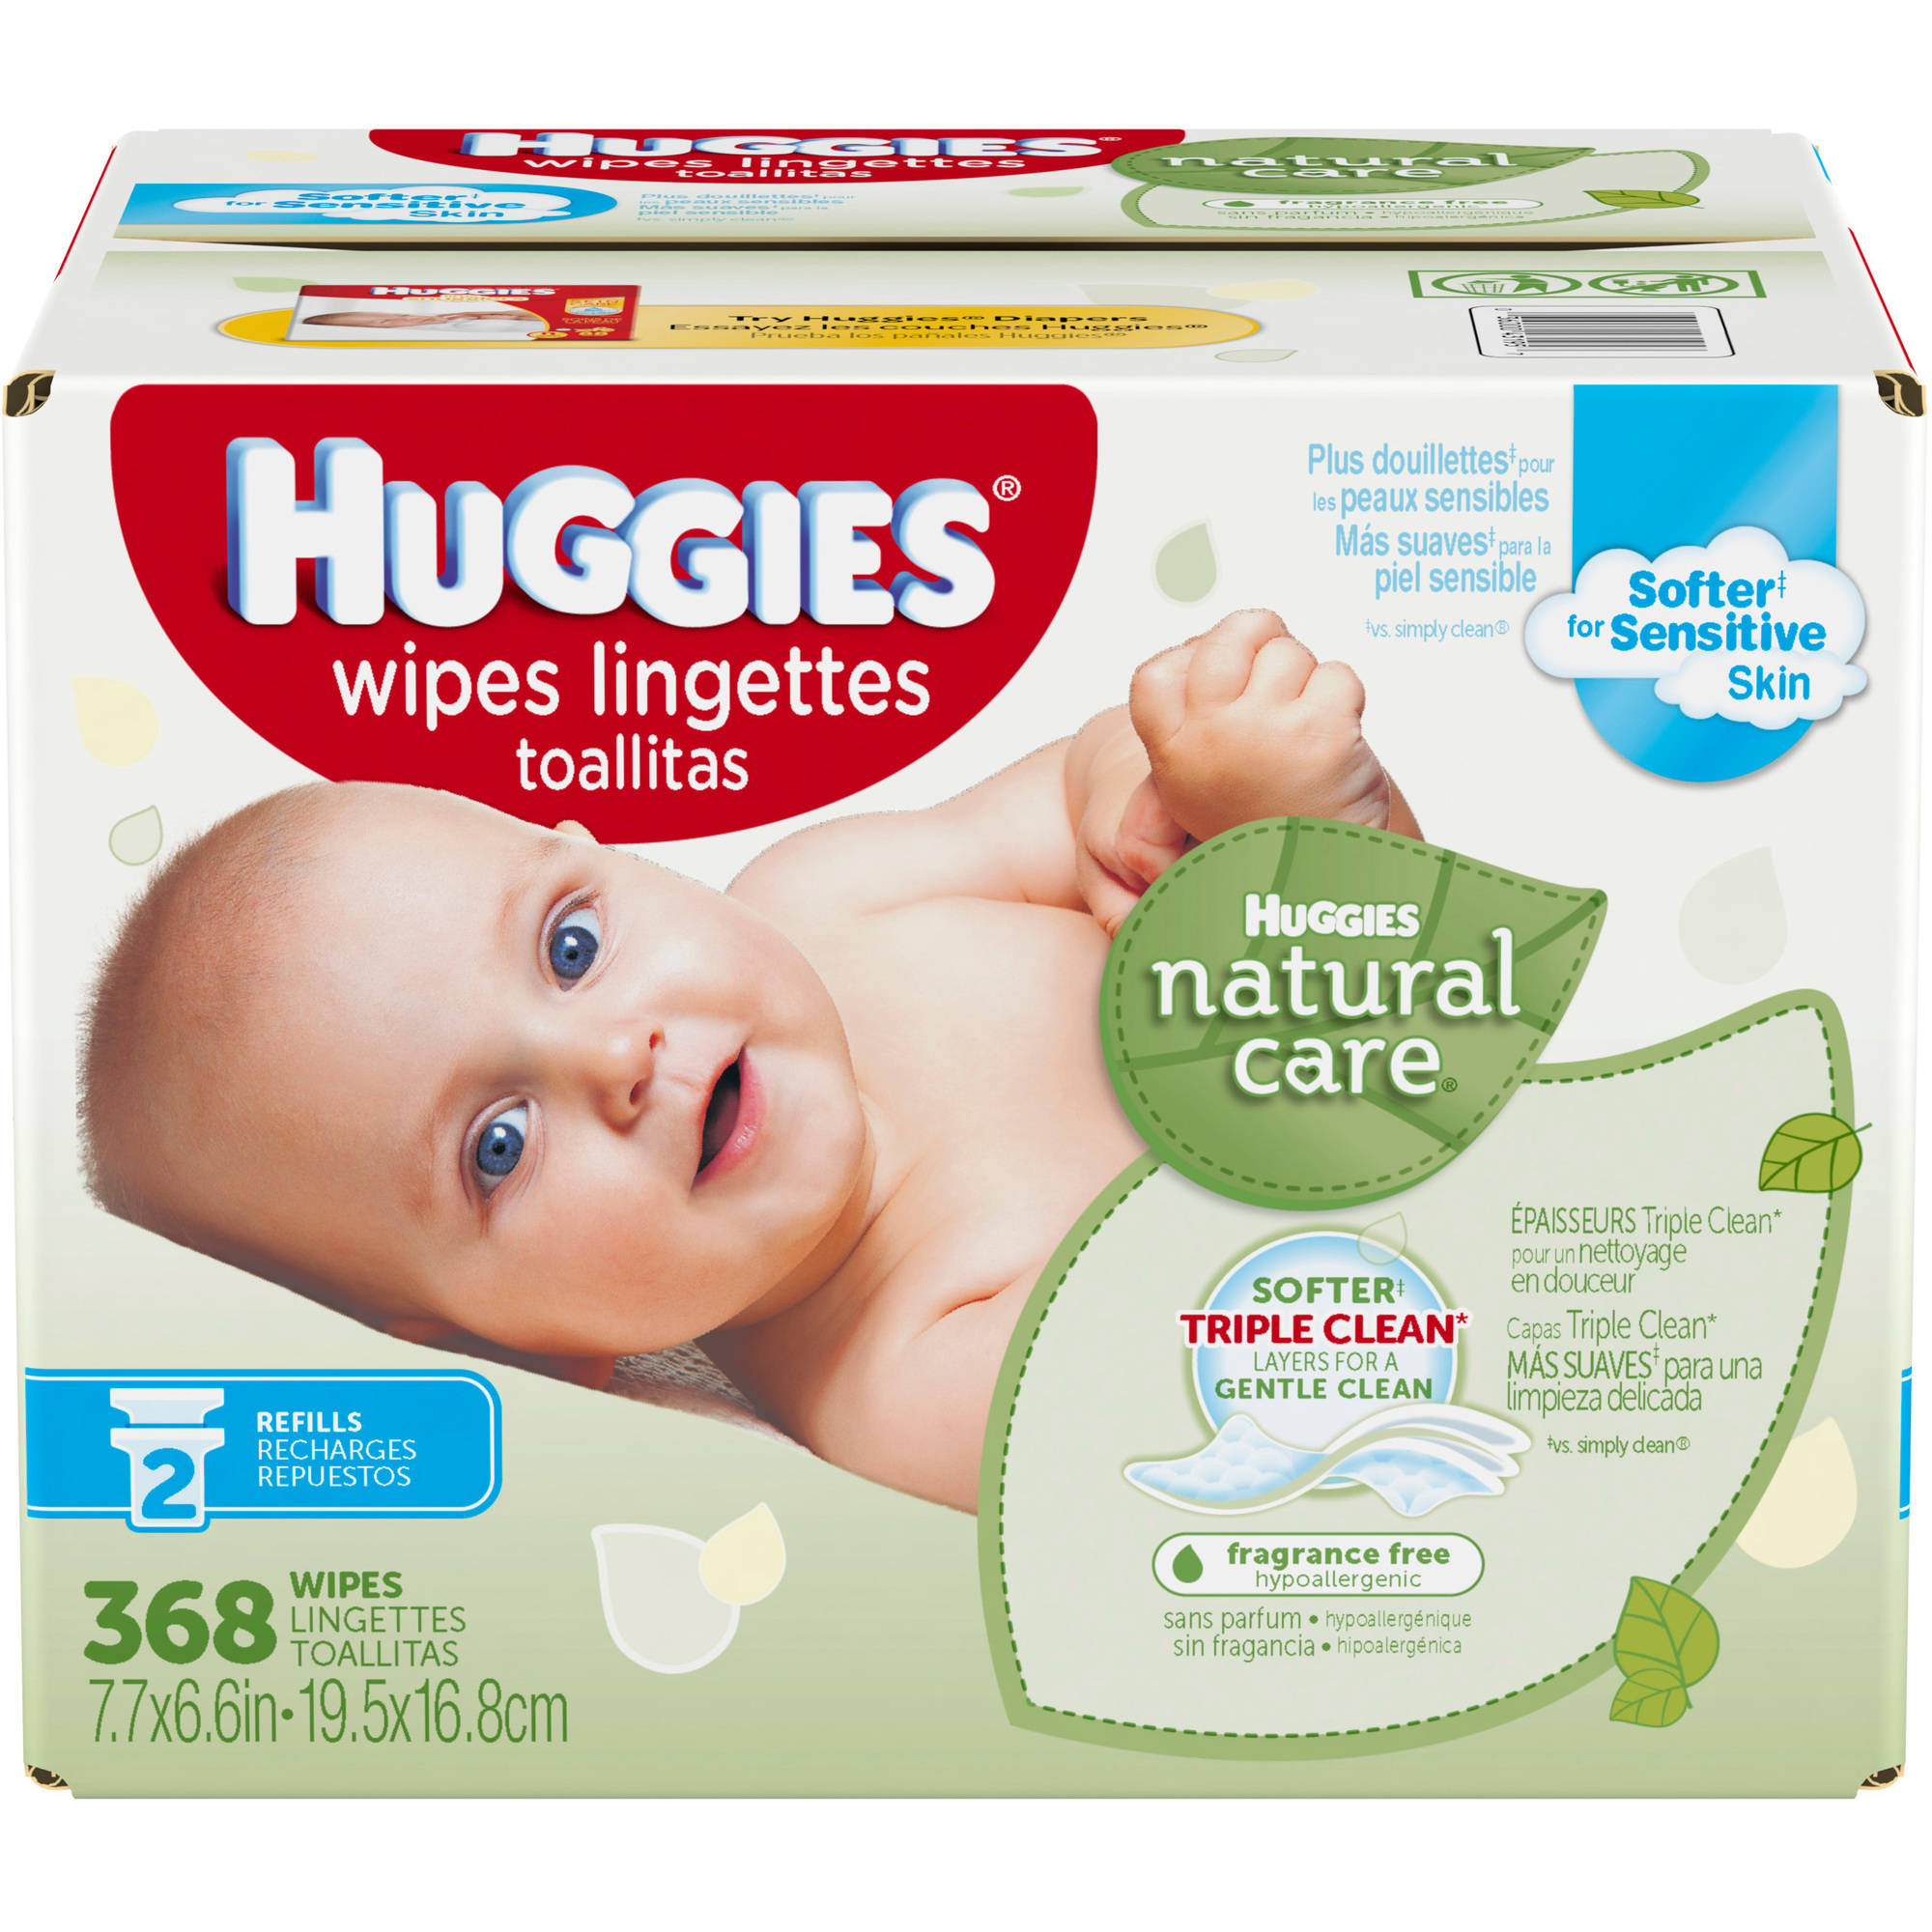 Huggies Natural Care Baby Wipes, Refill, Unscented, Hypoallergenic, Aloe and Vitamin E